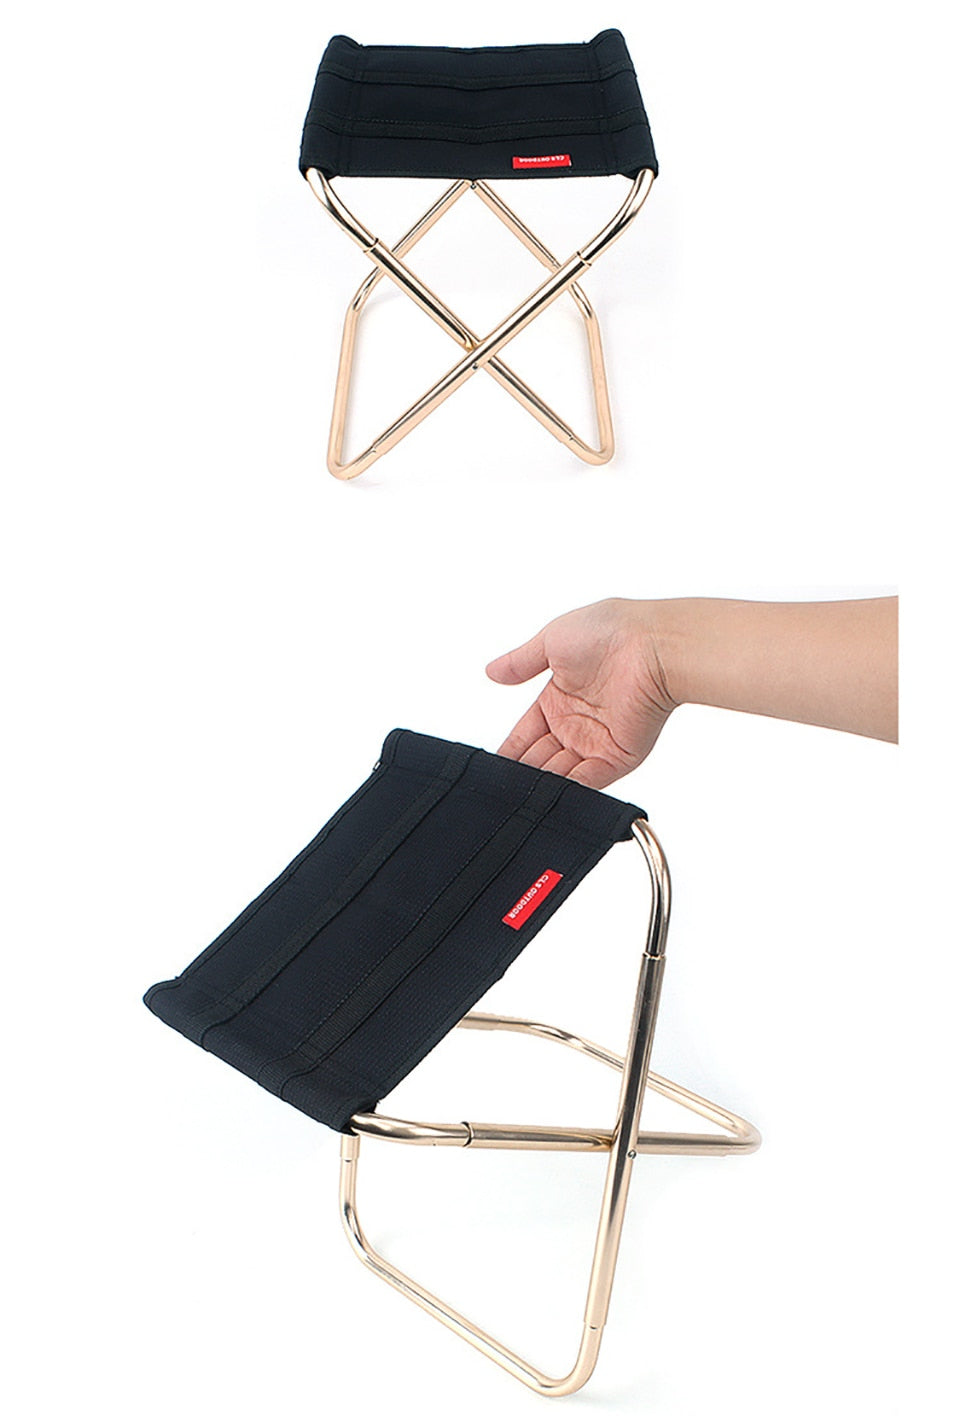 Ultra-light Outdoor Folding Chair - RB Trends